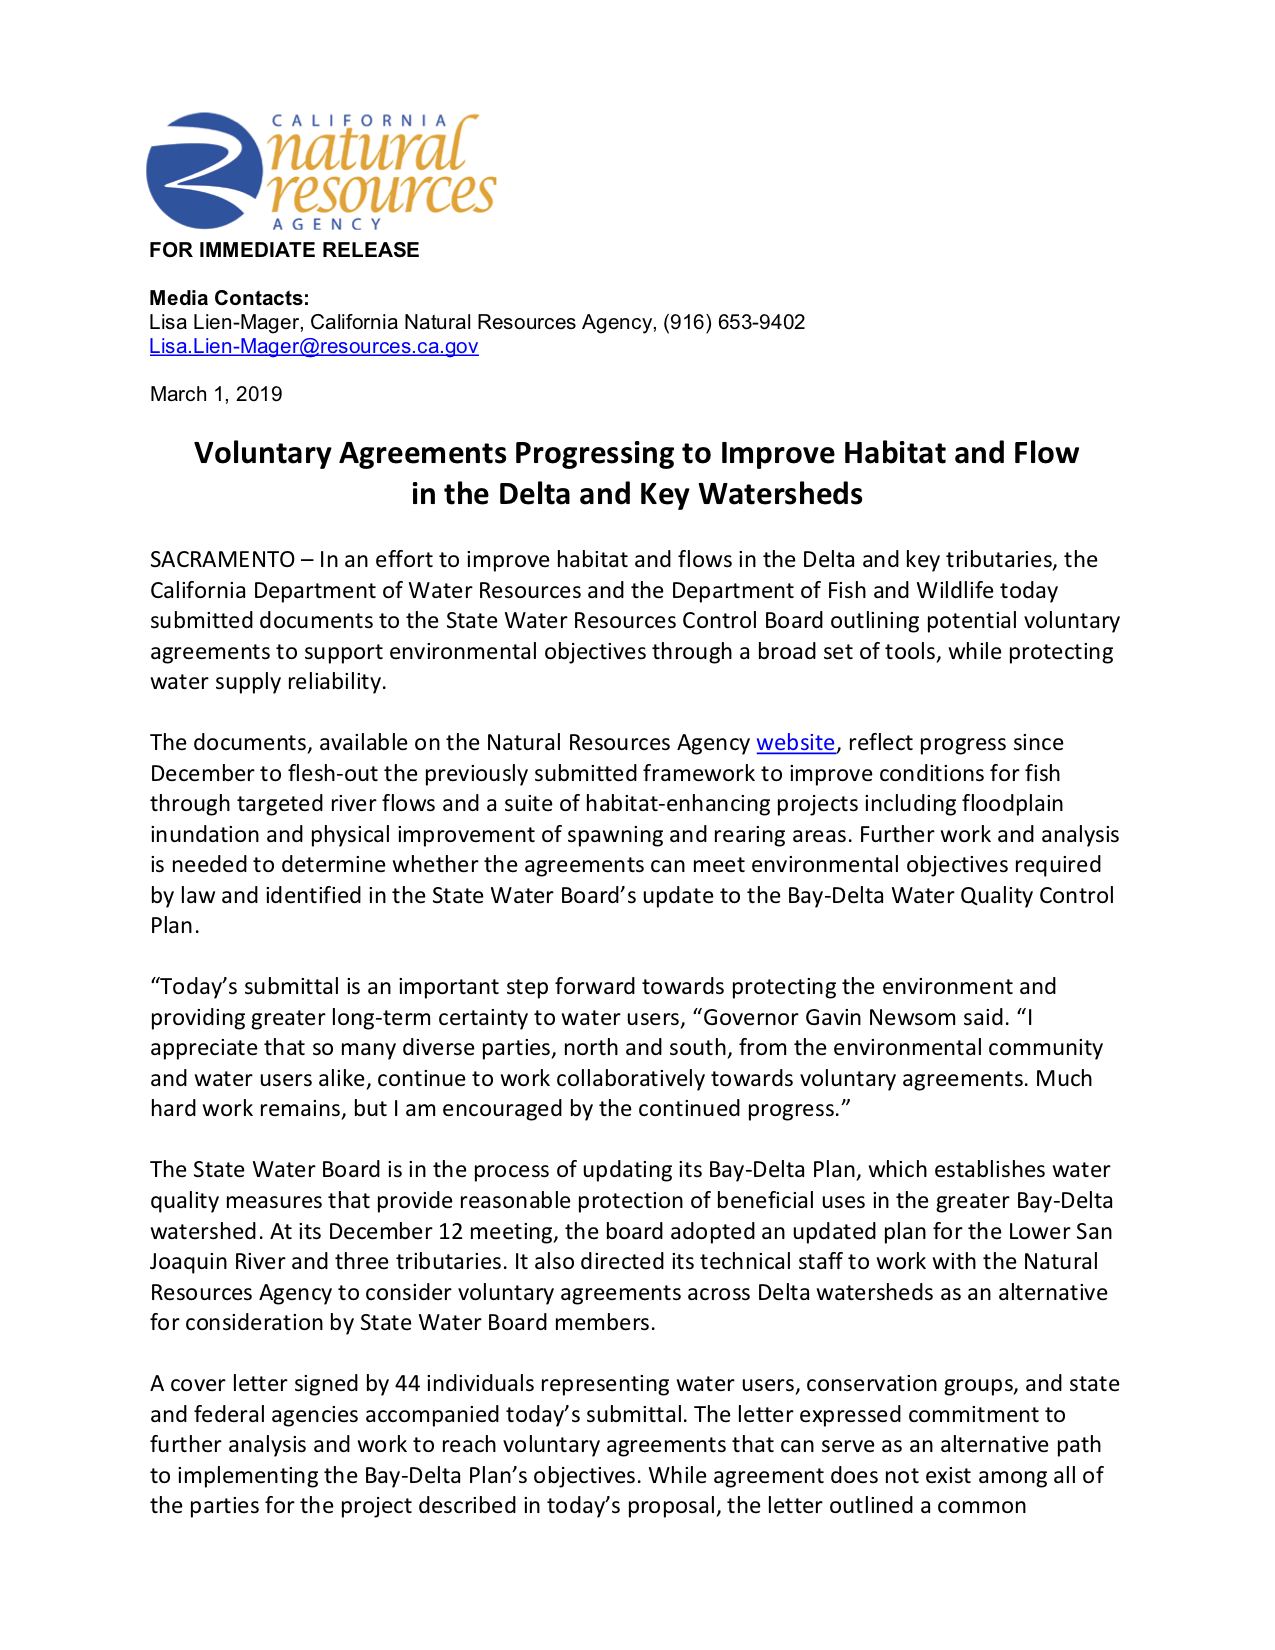 Voluntary-Agreements-Progressing-to-Improve-Habitat-and-Flow-03-1-19.png